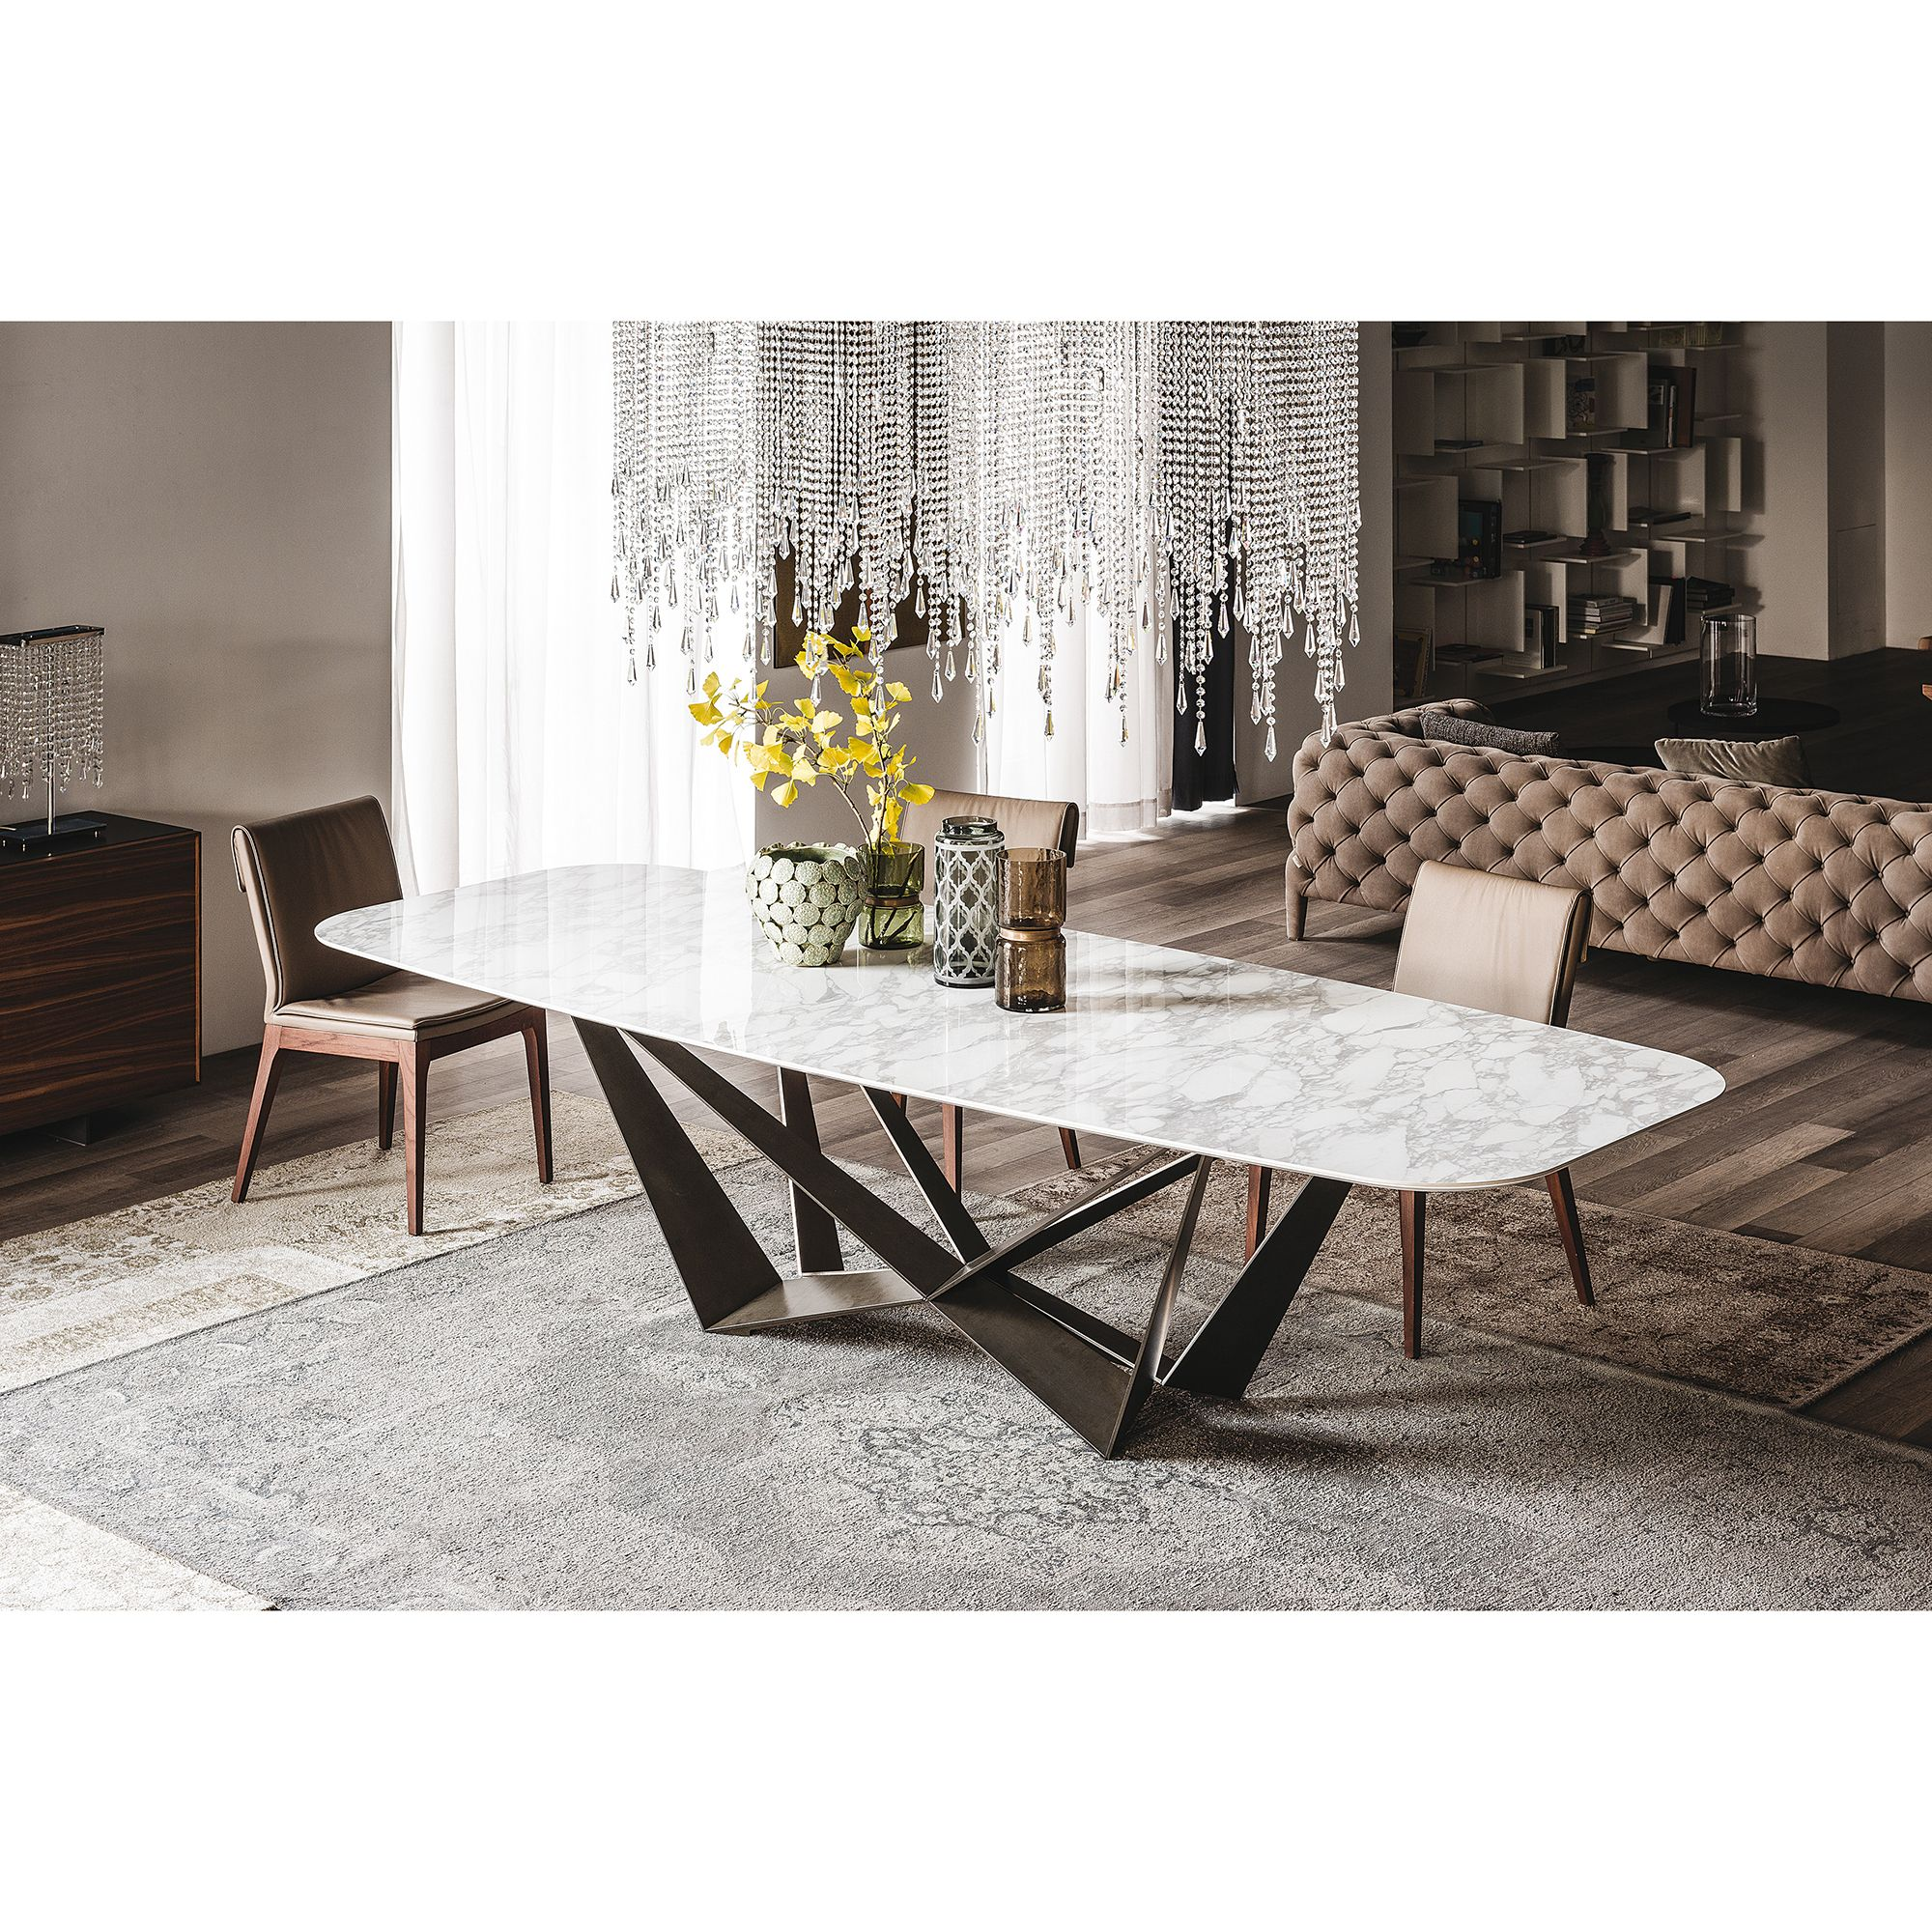 Amazing Skorpio Dining Table In 2019 Contemporary Dining Table Uwap Interior Chair Design Uwaporg